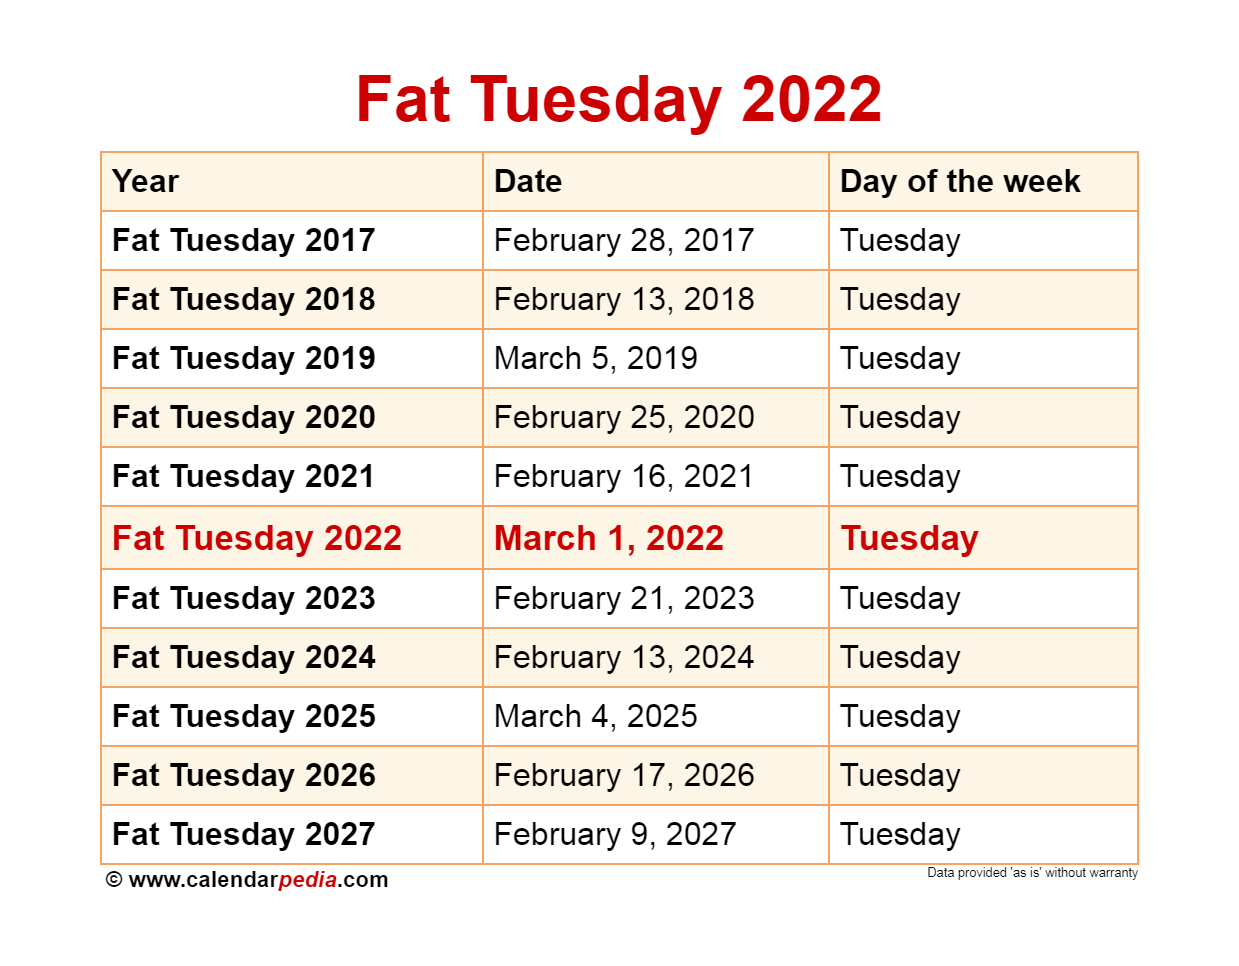 New Orleans Festival Calendar 2022.When Is Fat Tuesday 2022